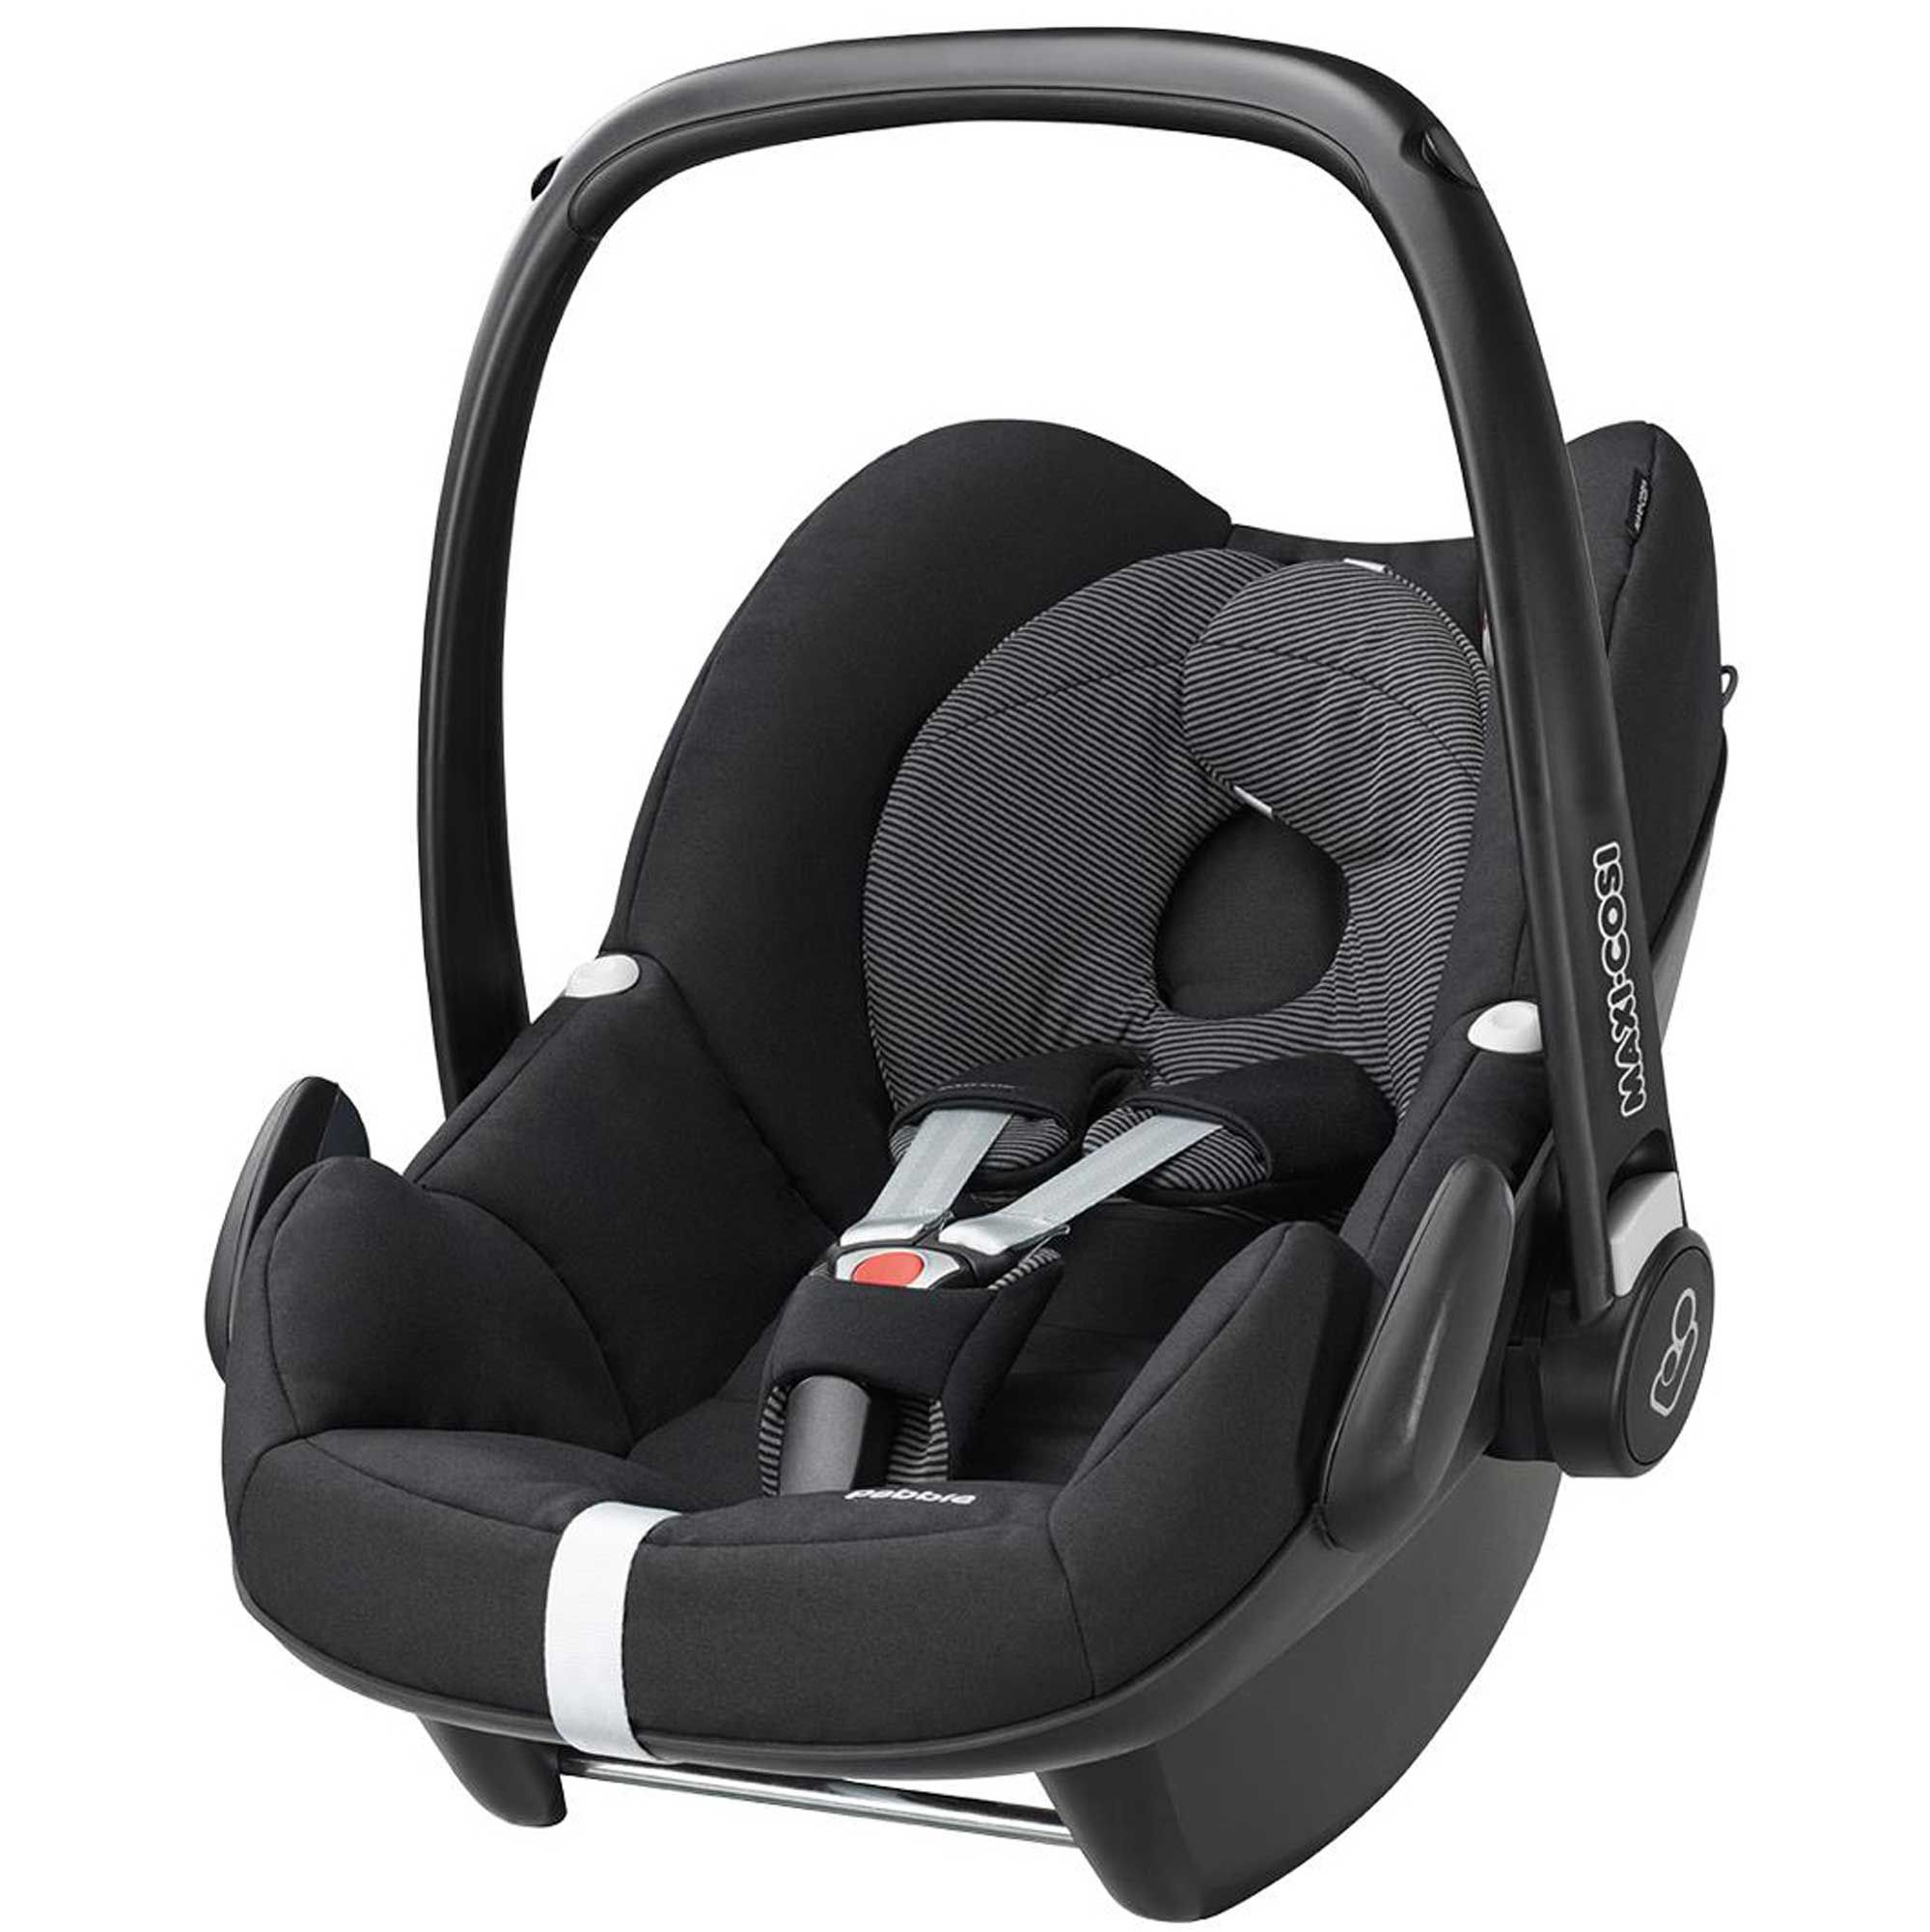 Maxi Cosi Pebble Car Seat Replacement Cover